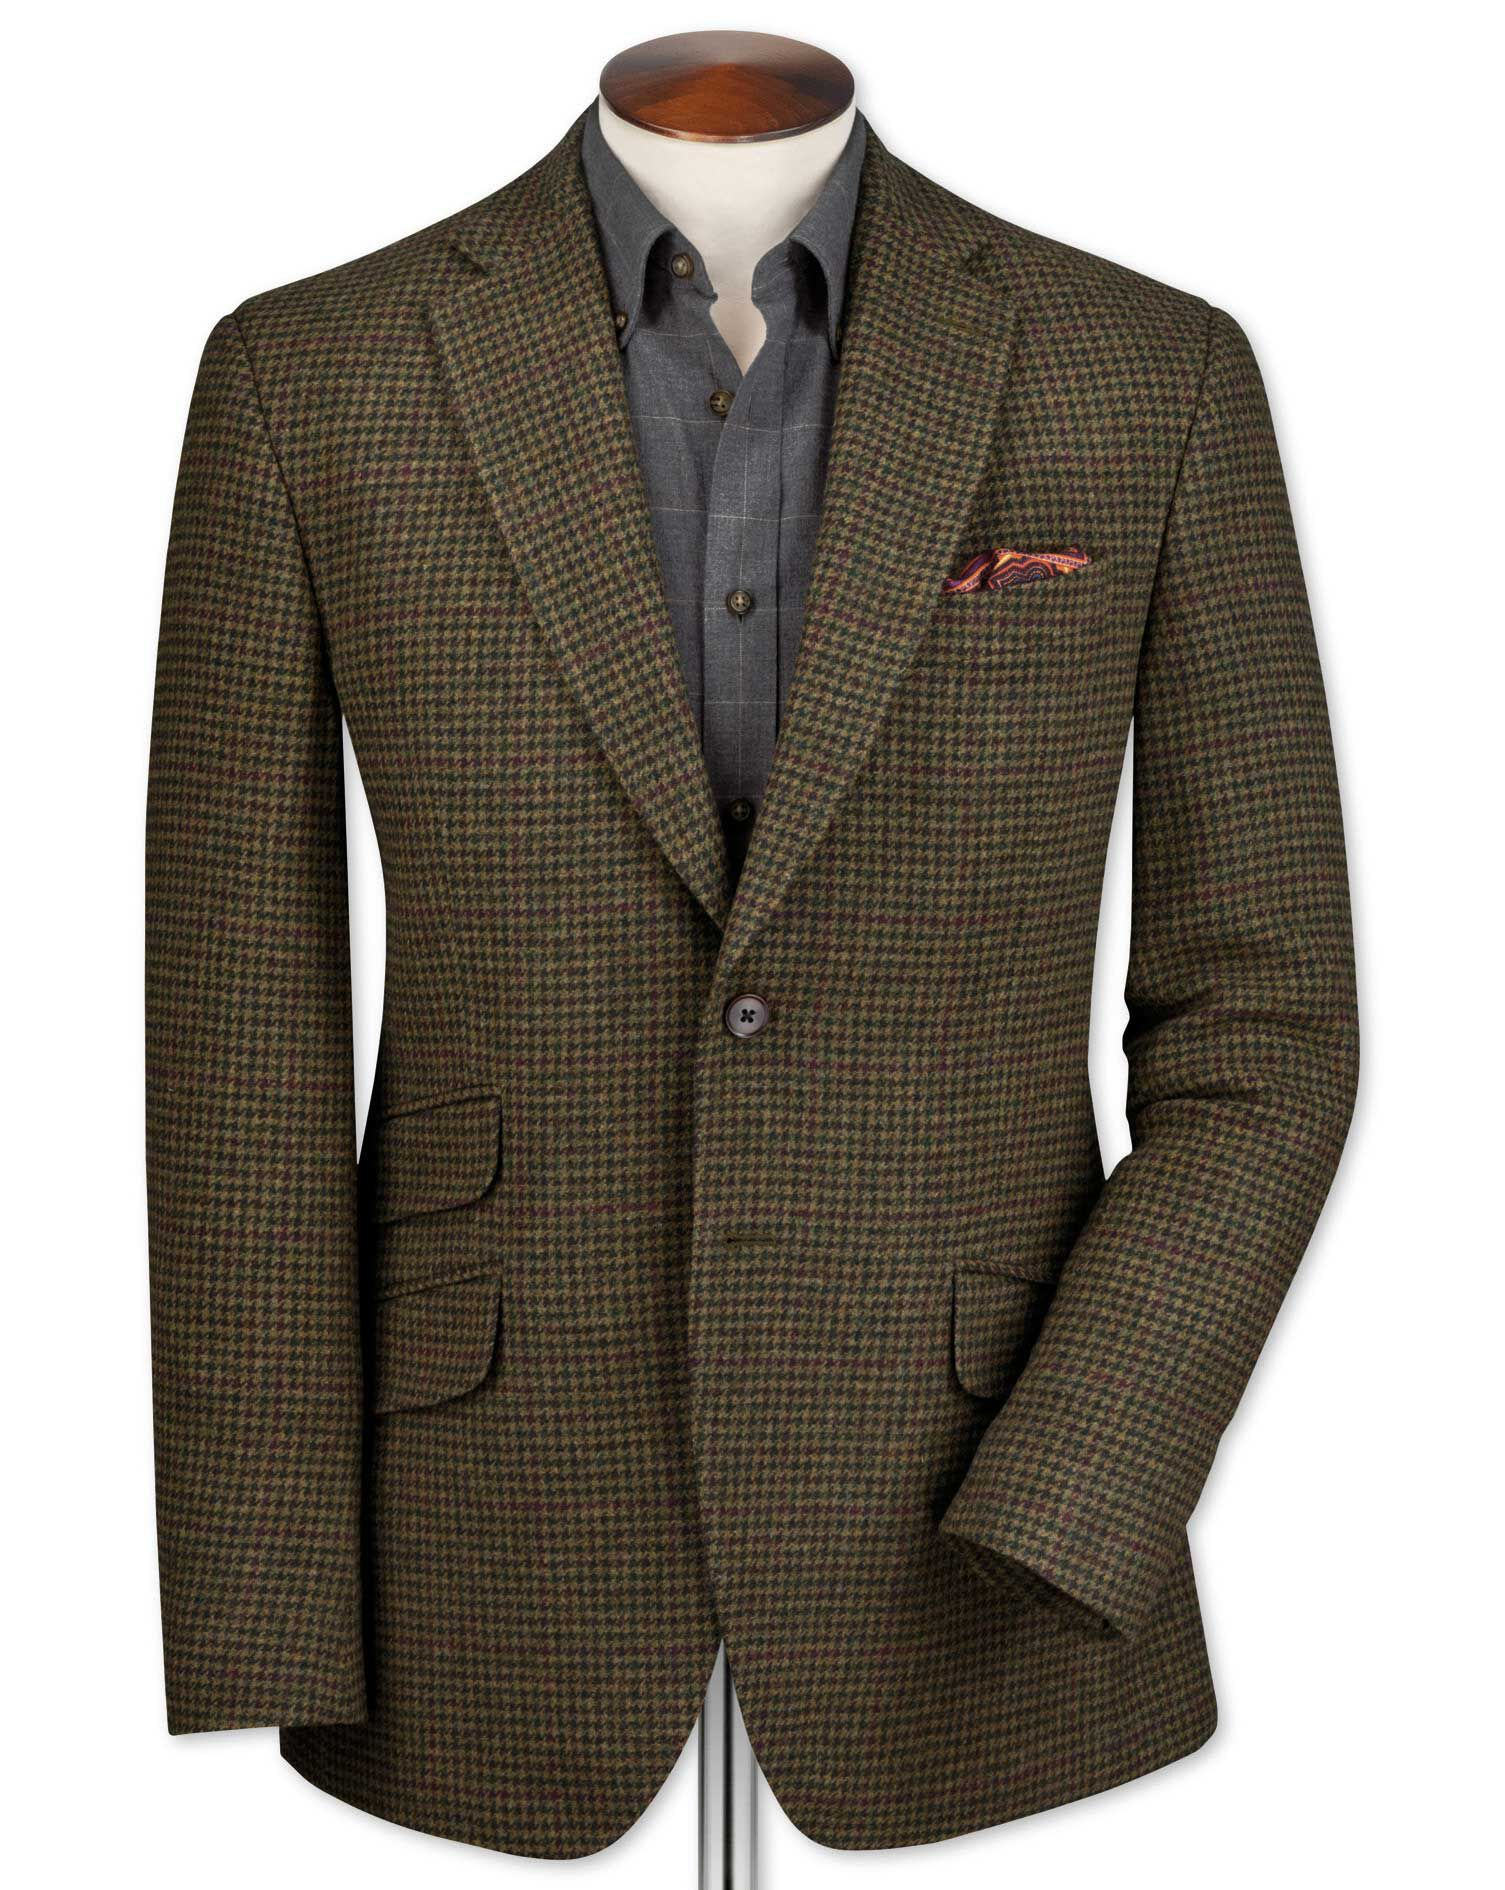 Classic Fit Olive Checkered Luxury Border Tweed Wool Jacket Size 48 Regular by Charles Tyrwhitt